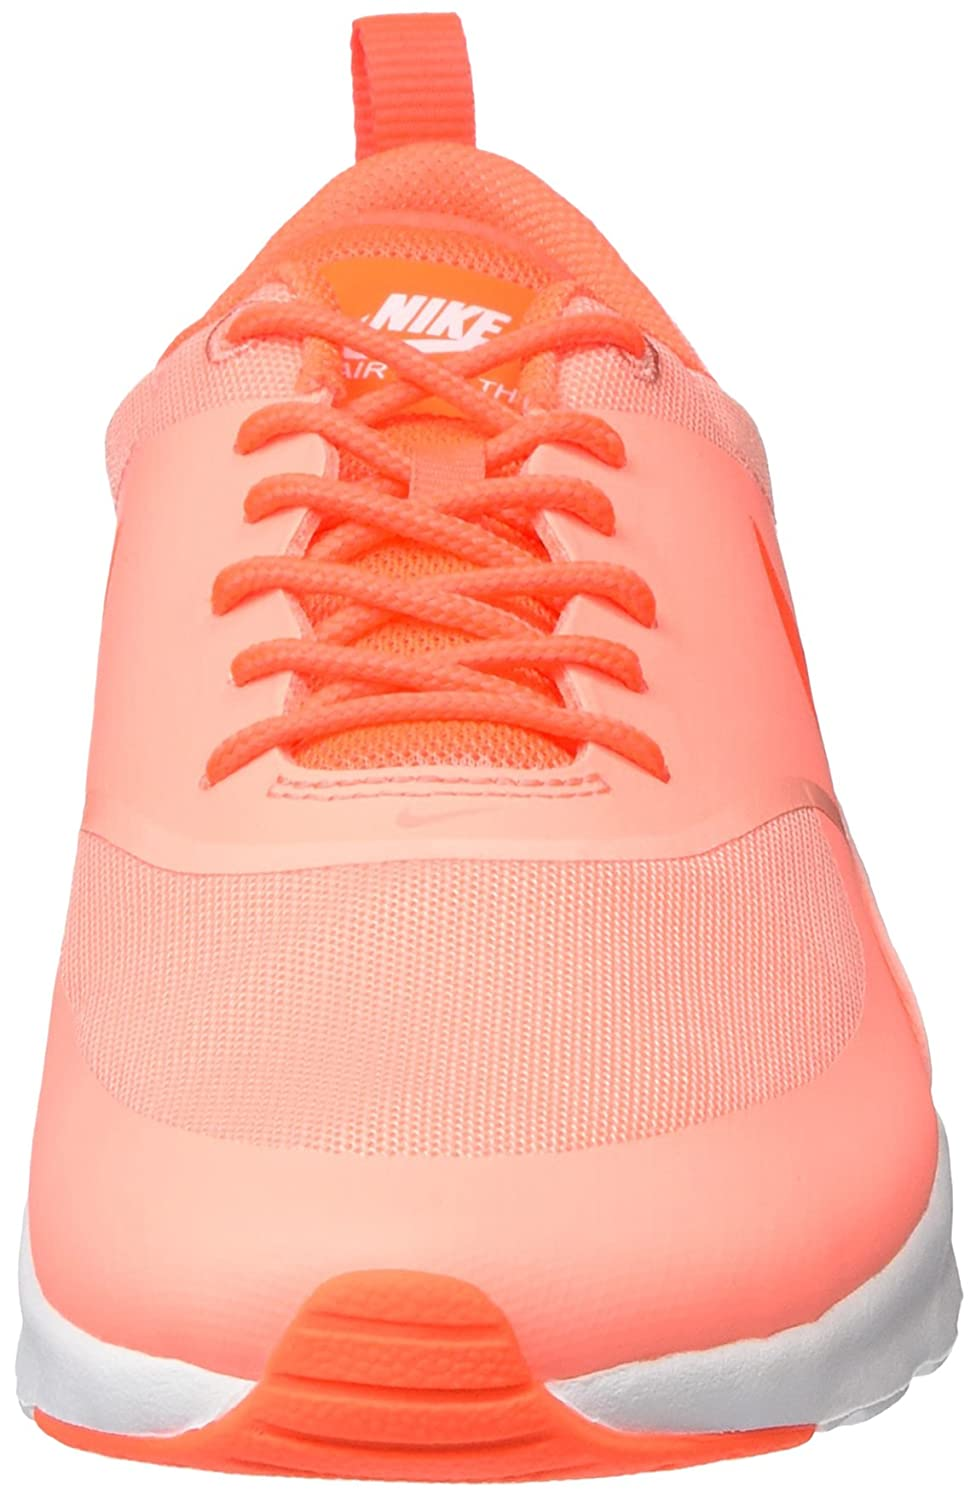 super popular 811b0 a8944 ... real nike womens air max thea running shoes amazon shoes bags 6af68  01396